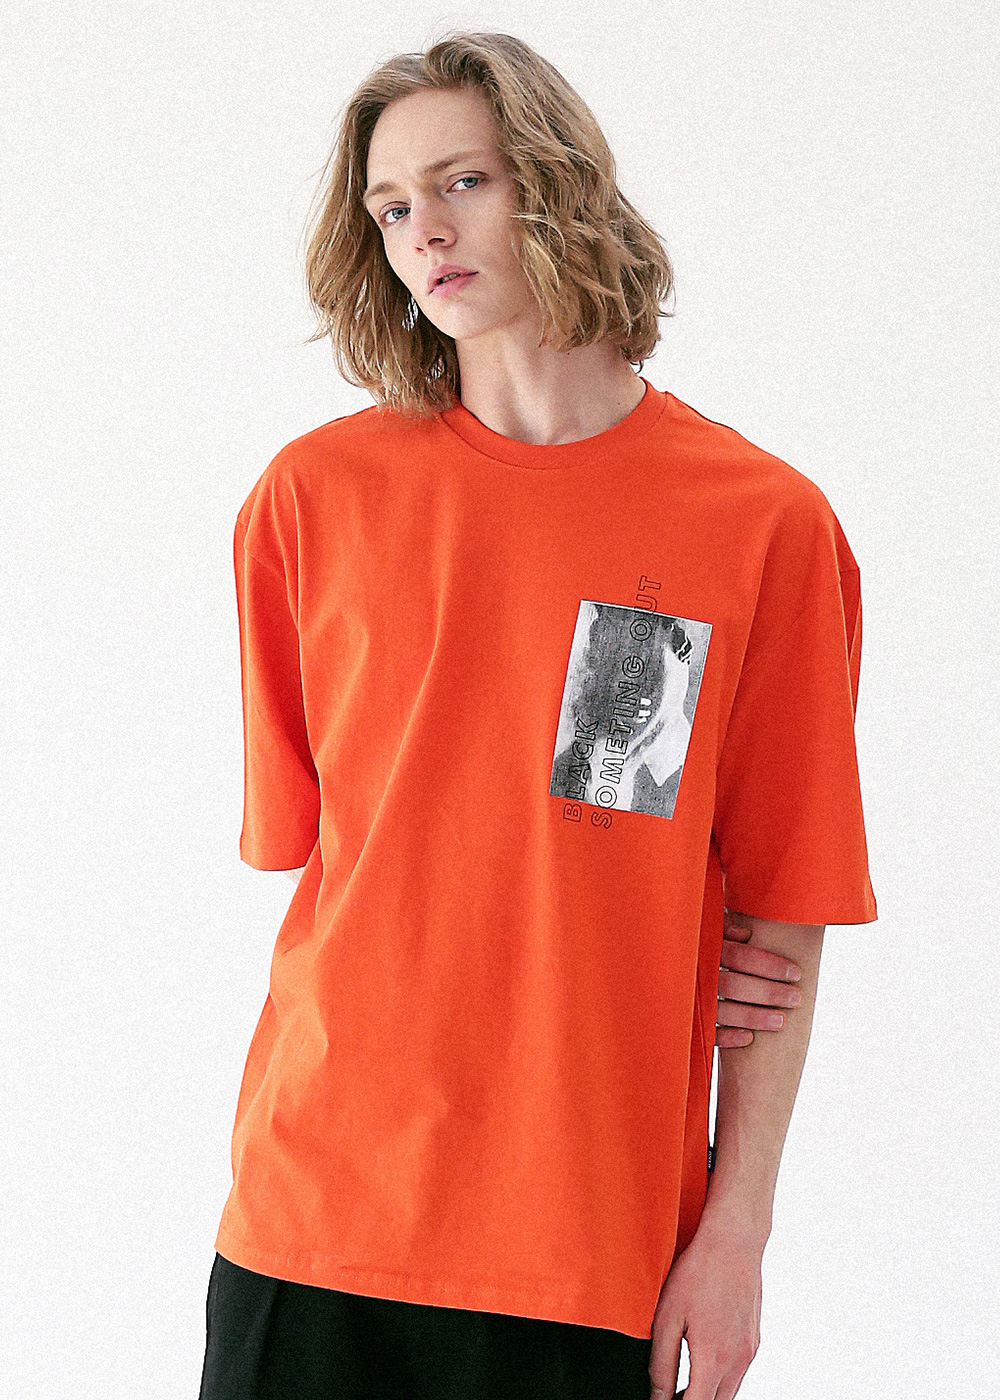 NAKEDNESS OUT OVERSIZED T-SHIRT MUVTS006-OR